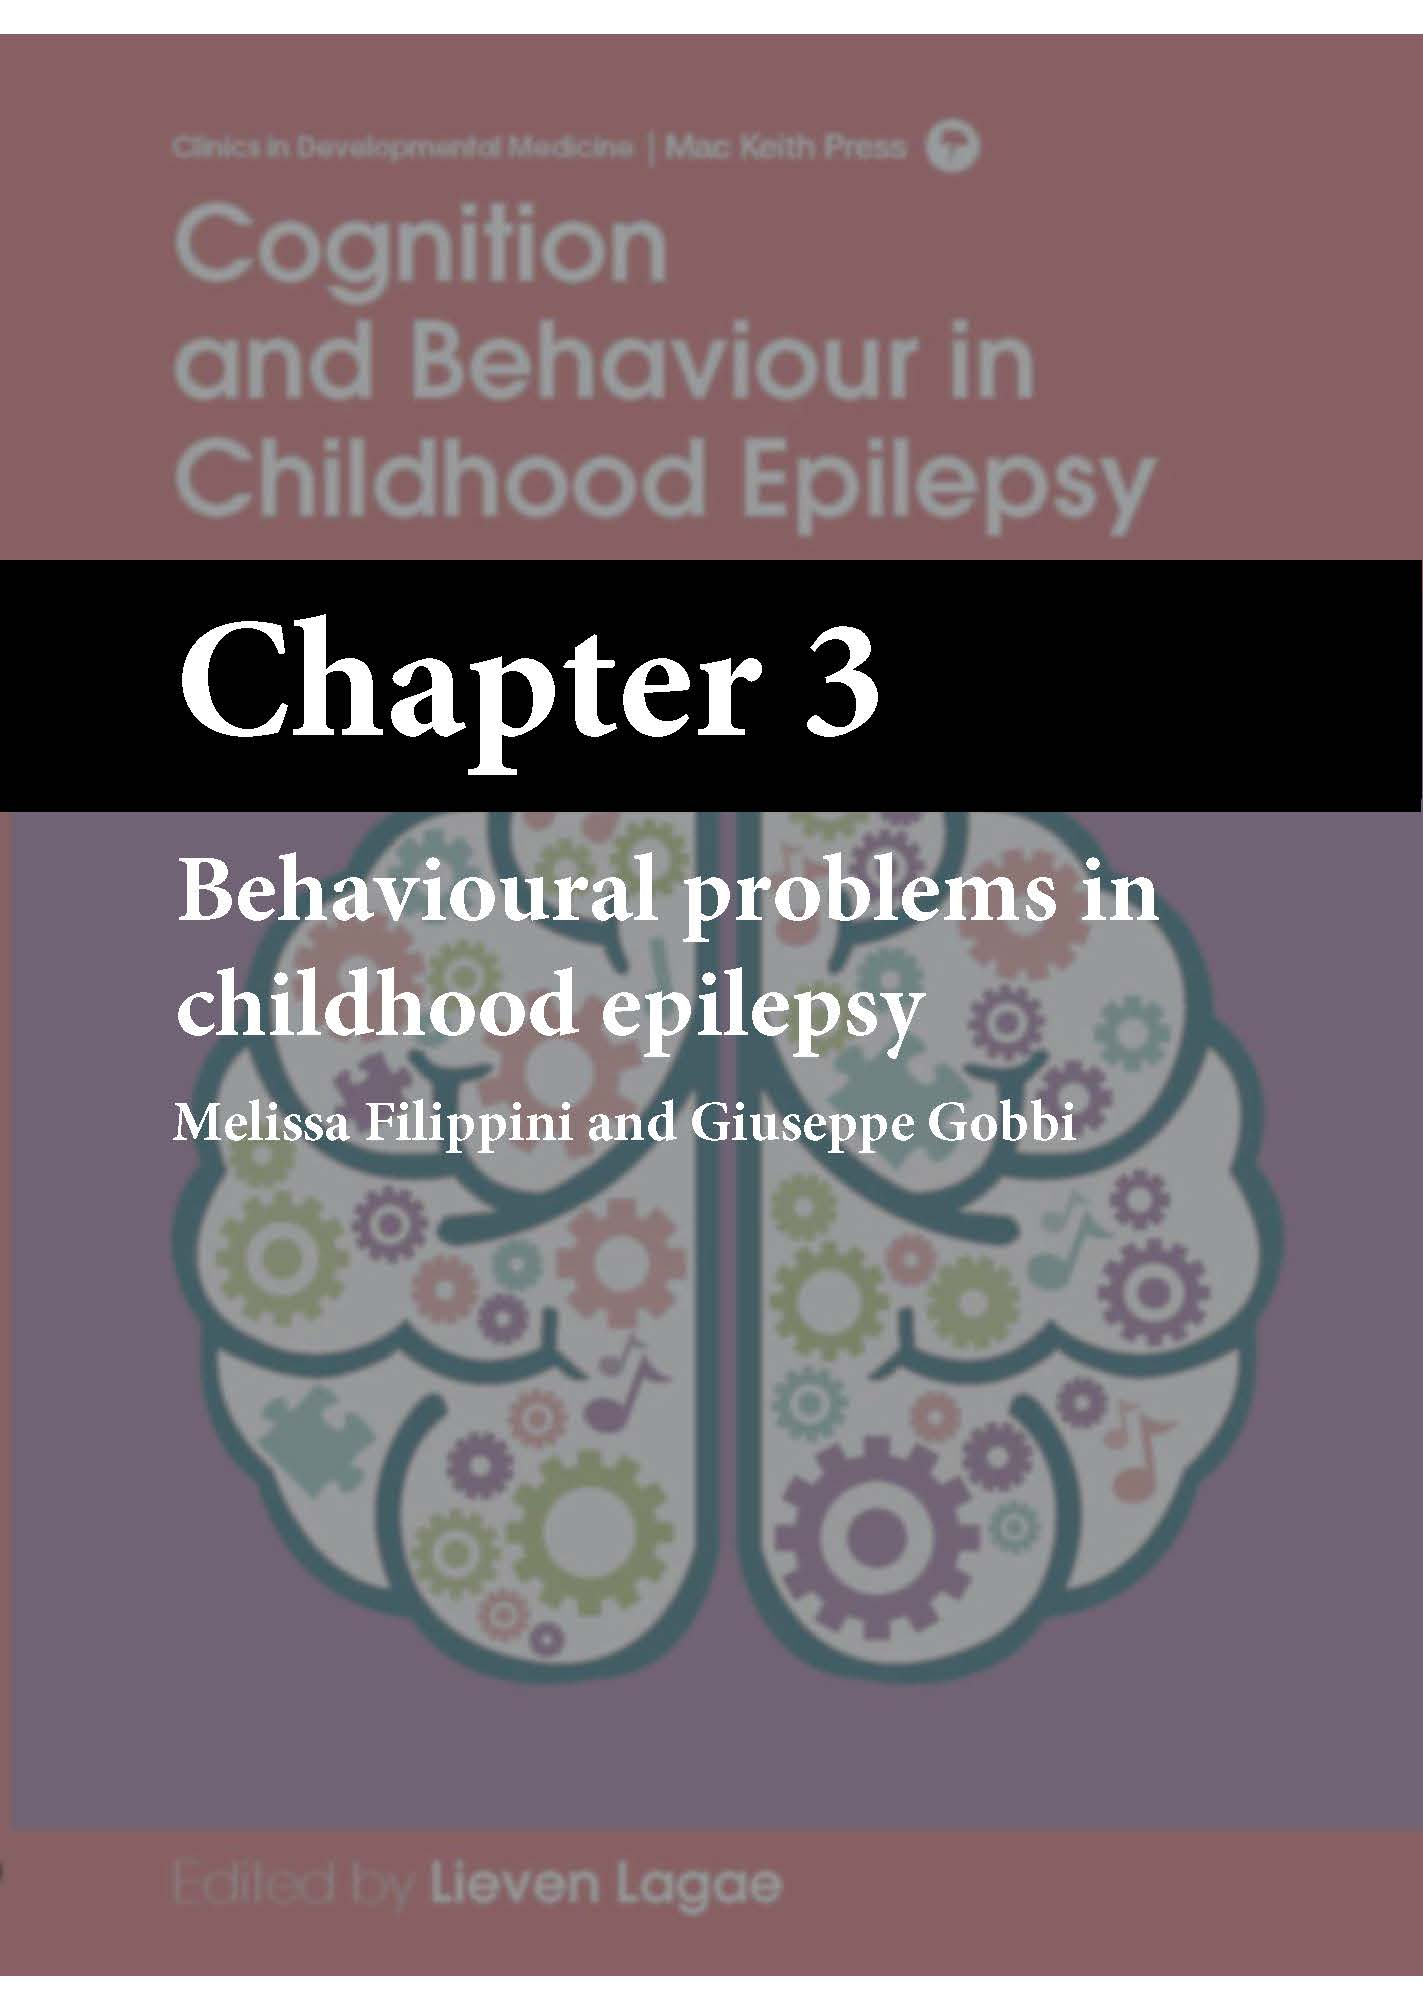 Cognition and Behaviour in Childhood Epilepsy, Lagae, Chapter 3 cover